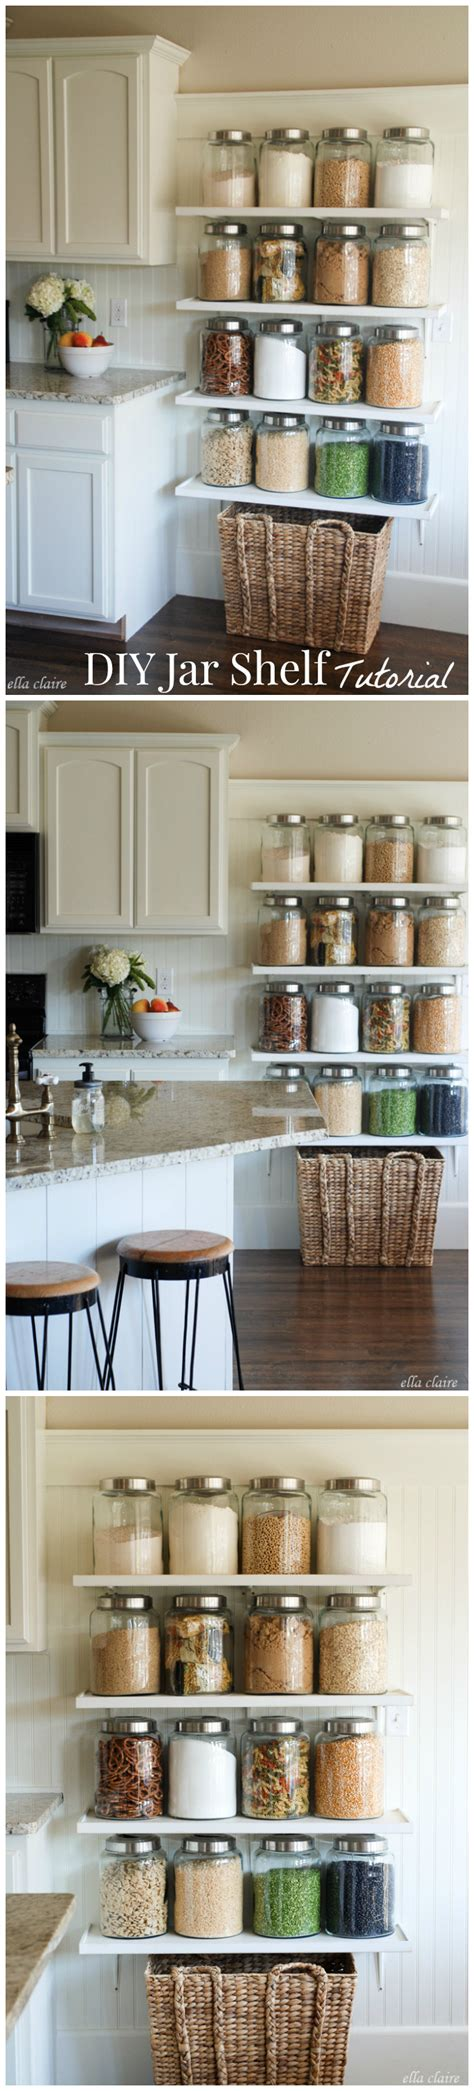 Jar Shelf by Diy Kitchen Jar Shelves Tutorial Ella